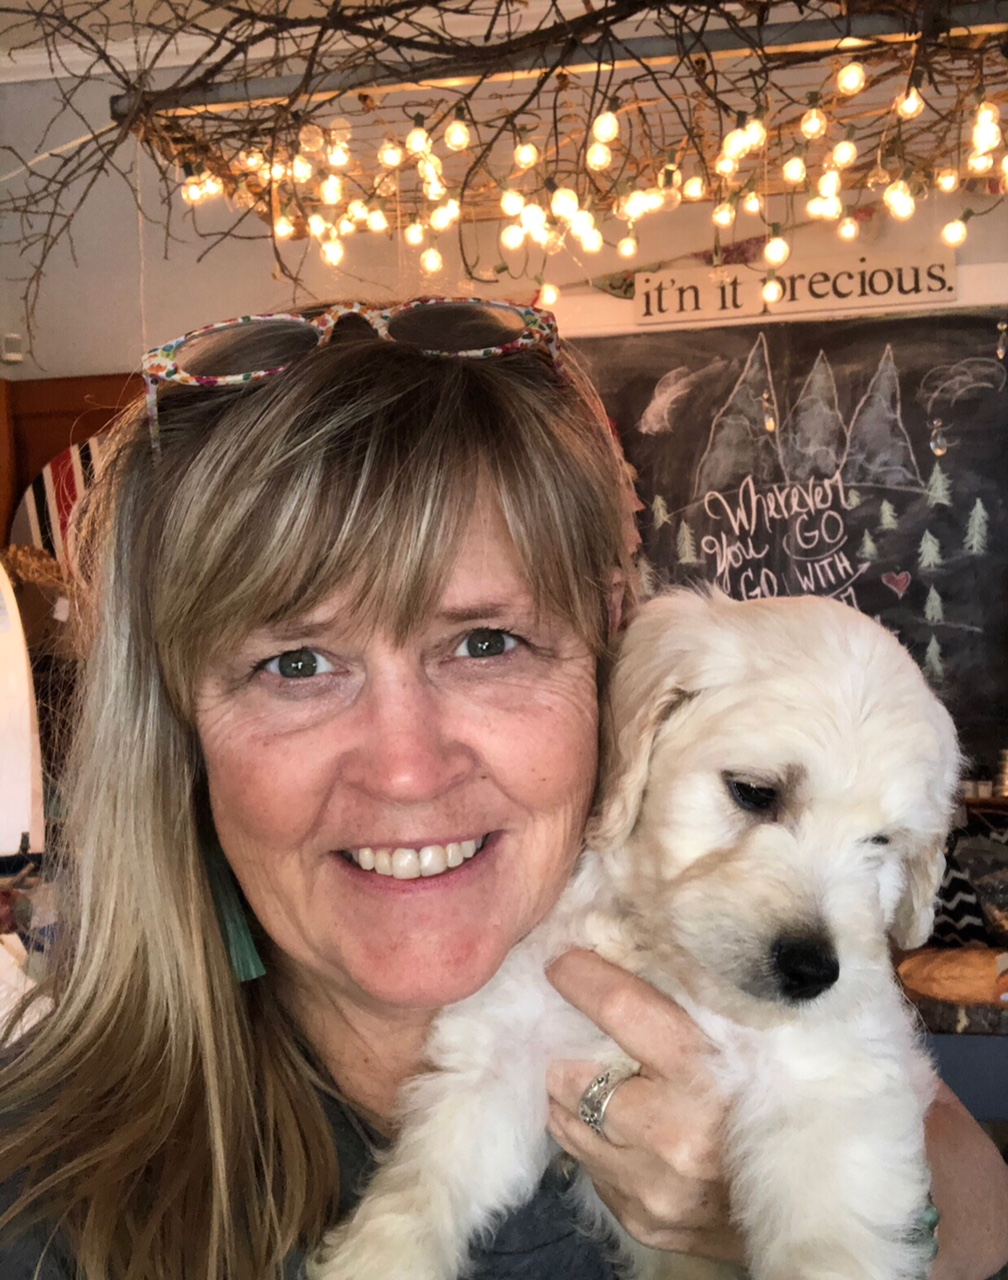 "My name is Sherri and I'm a #dogmom. This is Stanley my golden doodle when he was a pup. I have 3 married children who have given me 5 of the sweetest grands on earth who call me ""ma'am!"" ( They.melt.me .) I'm the co-owner of a shop called Front Room on 7th, which is in Southwest Ohio! I'm a creative (it's in my DNA) and love to re-purpose vintage treasures. I'm also a furniture artist. Whimsy is what makes my heart race, but if painting something gray is what ""sparks joy"" for someone, I can respect that, but I'm wanting to add harlequin patterns while I work on it. ;) My bedroom had been on the ""to do list"" forever, but moms sometime take a backseat, and that's okay.  Winning the Redesign with Prima Facebook contest gave me the chance and motivation to turn my drab bedroom into a whimsical haven where I'll look forward to reading and resting at the end of each day! So, it's not a man cave... but it makes me smile! I did a Facebook live ""unboxing"" when the package came, it wasn't hard to tell I was excited!"